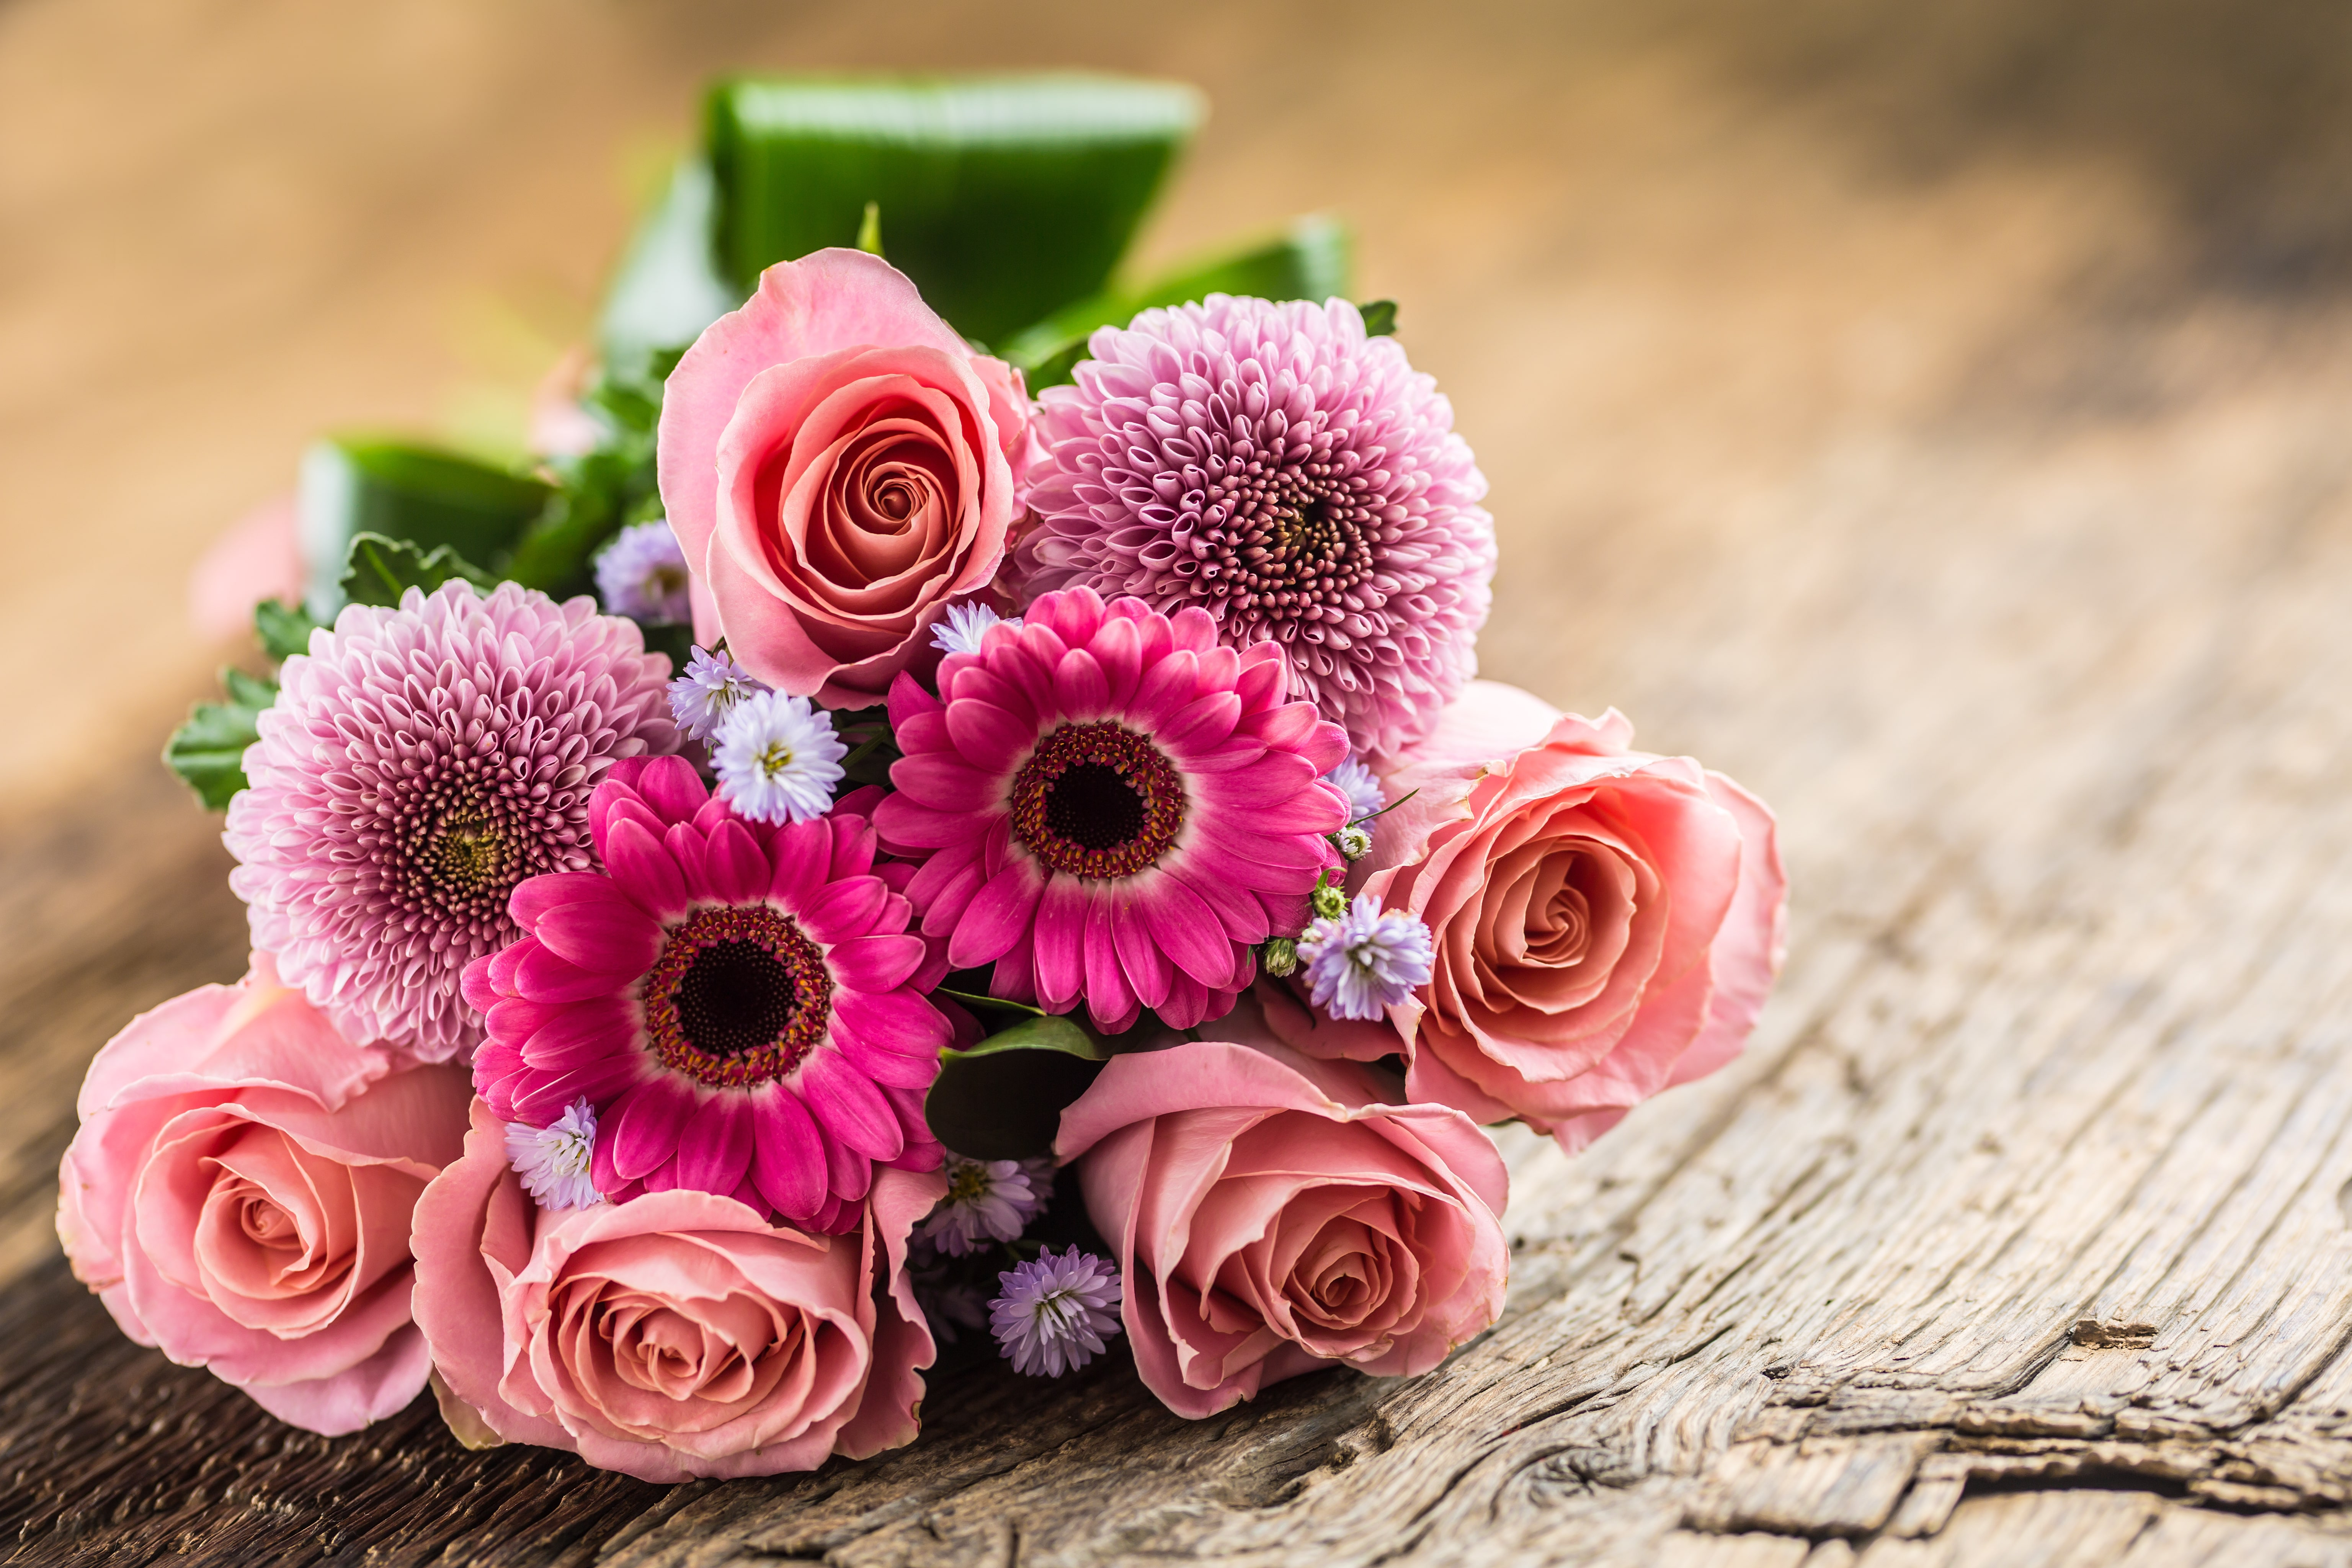 Close-up beautiful bouquet of flowers on wooden table.